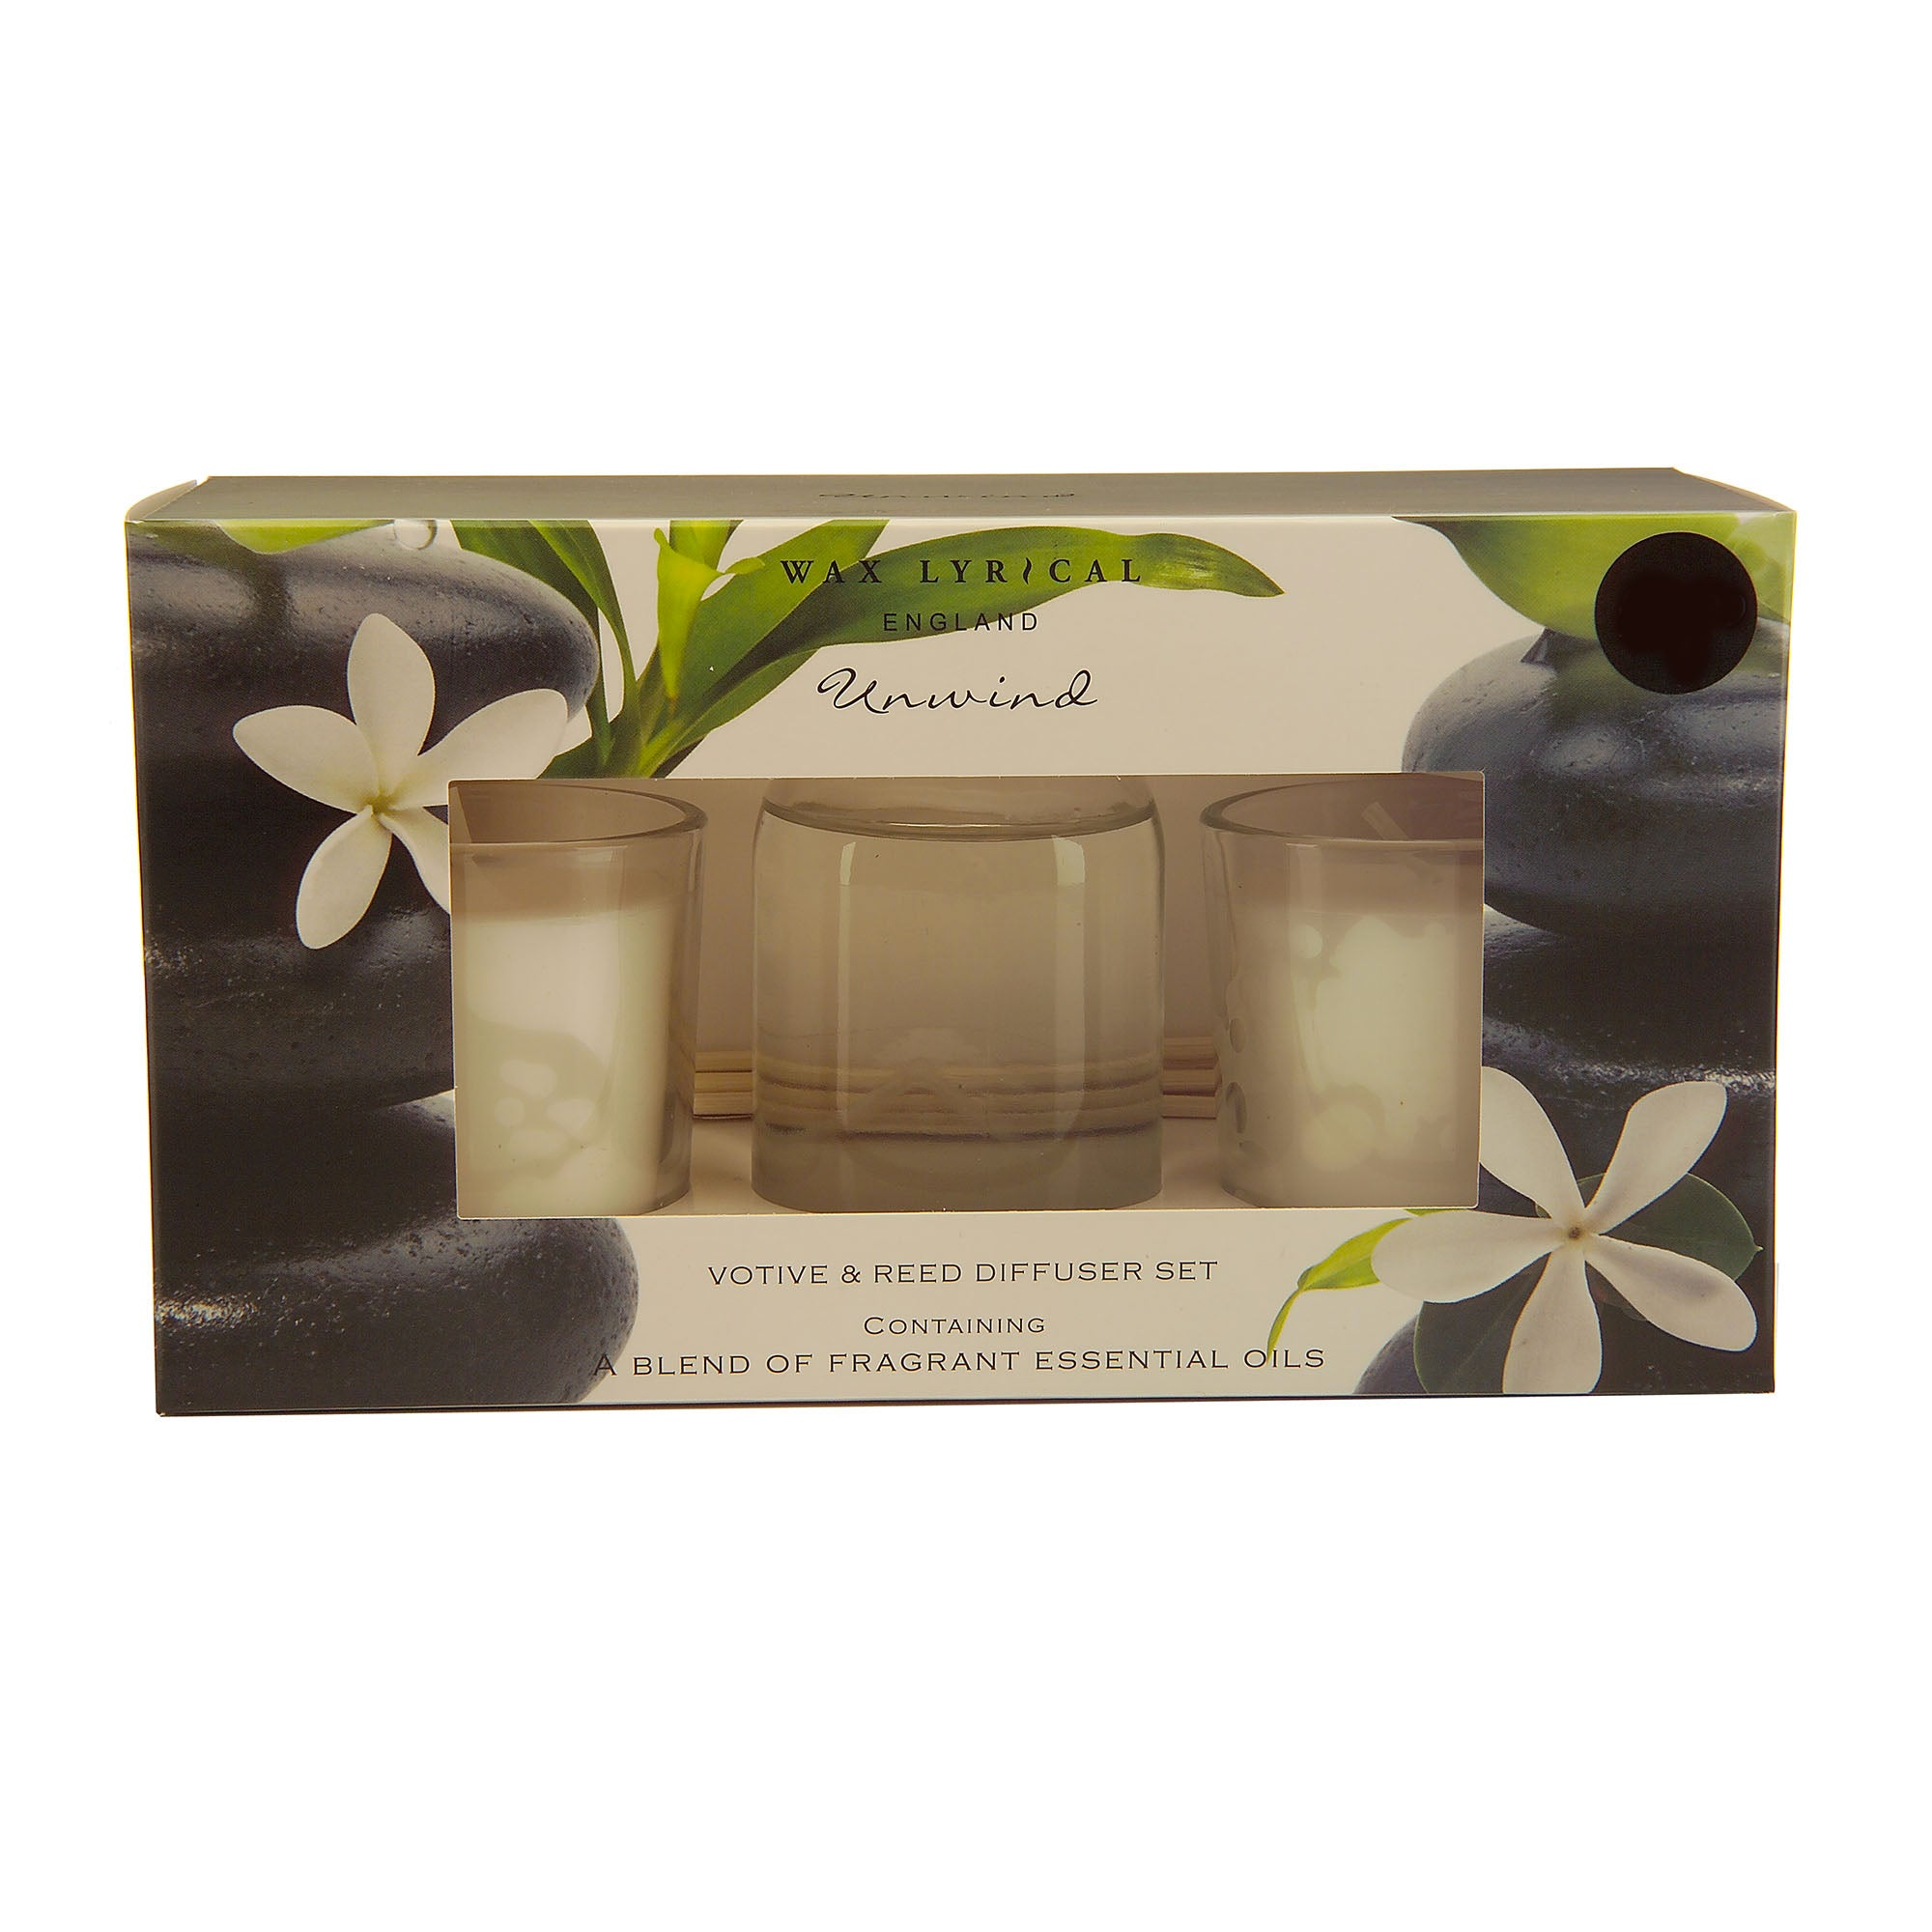 Wax Lyrical Unwind Diffuser and Votive Set